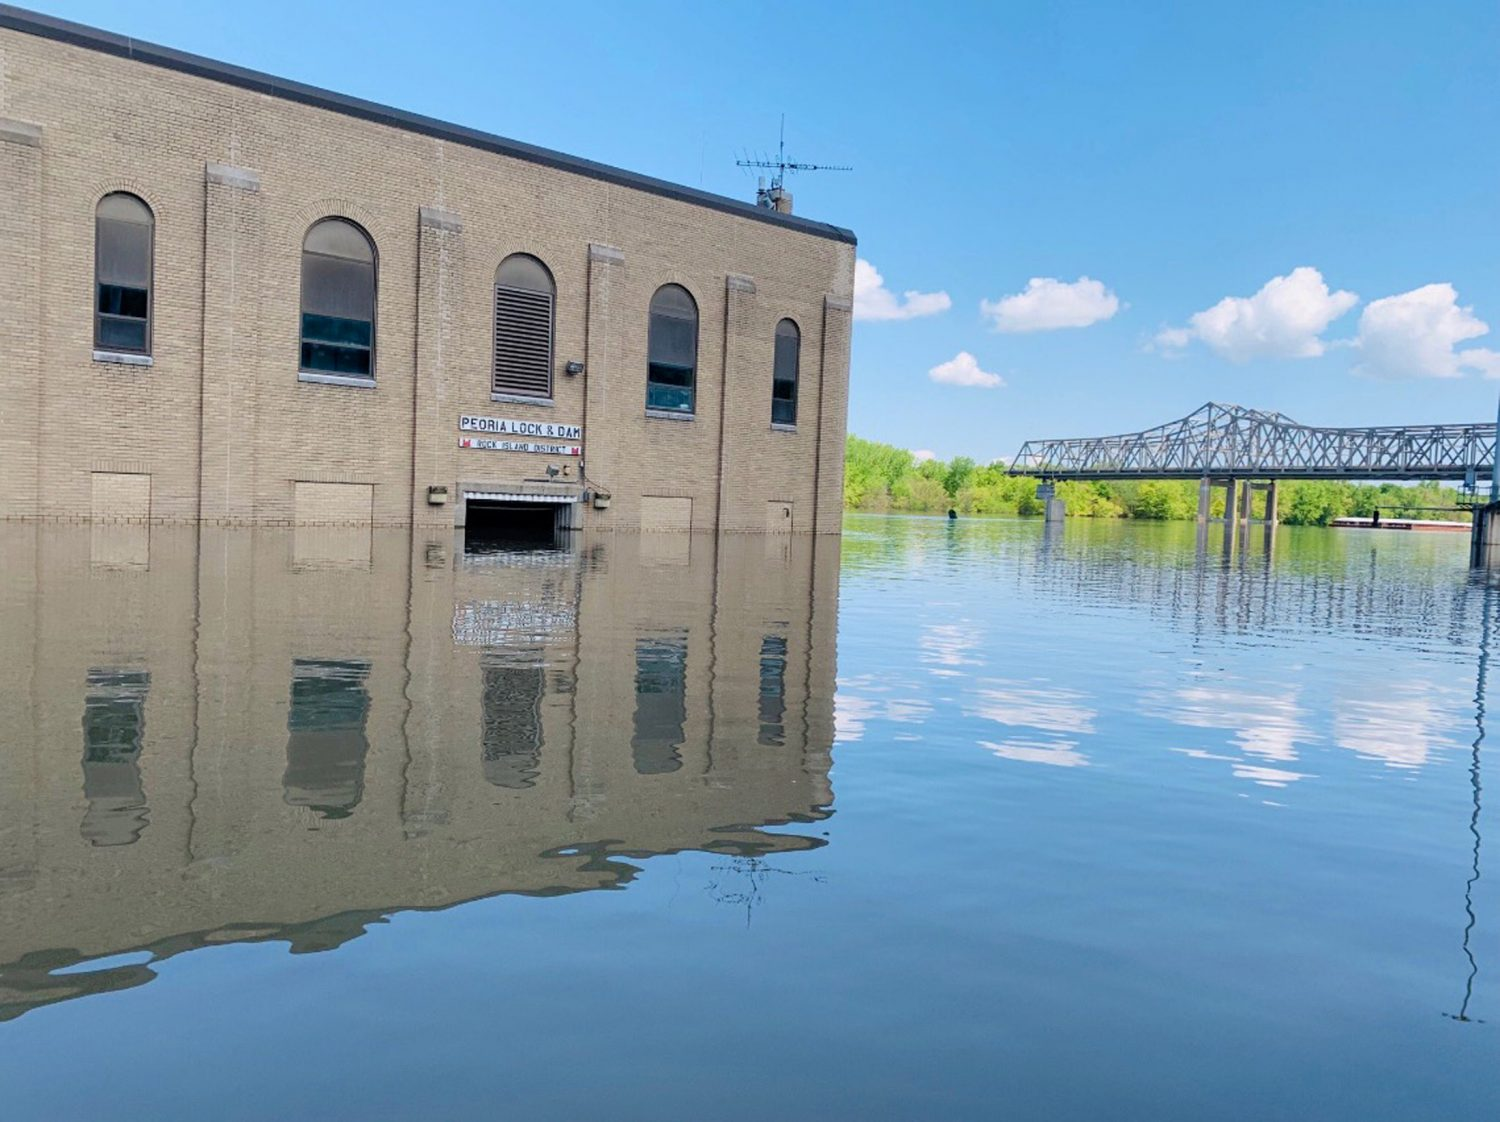 FILE PHOTO: The Peoria Lock and Dam building is shown surrounded by flood waters of the Mississippi River in Peoria, Illinois, U.S., May 16, 2019. U.S. Army Corps of Engineers/Rock Island District/Handout via REUTERS